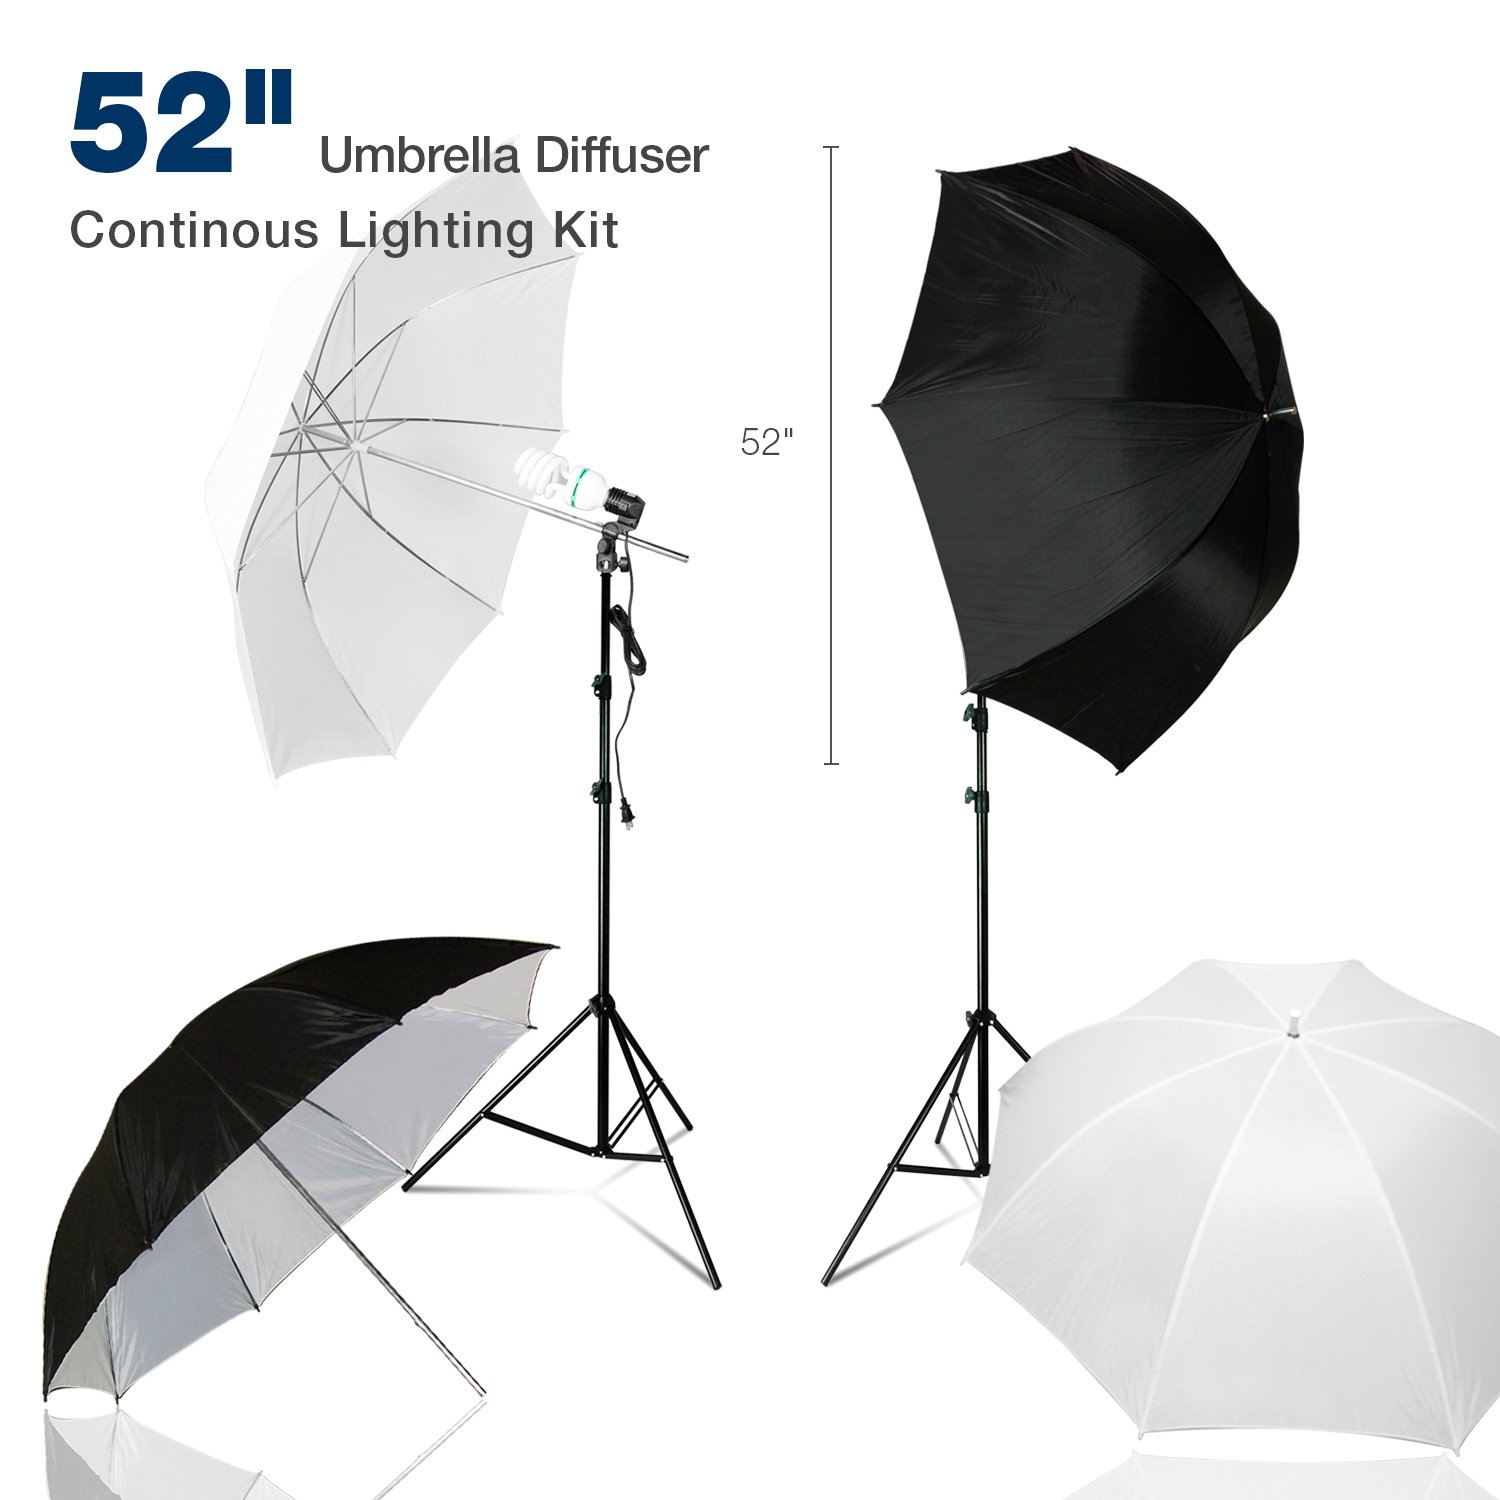 """Lusana Studio 52'' Double Layer Umbrella Diffuser Continuous Lighting Kit with Light Stands, 52"""" Double Layer Black/White and White Umbrellas and Bulb Light Sockets for Photo Video Studio, LNA1027"""